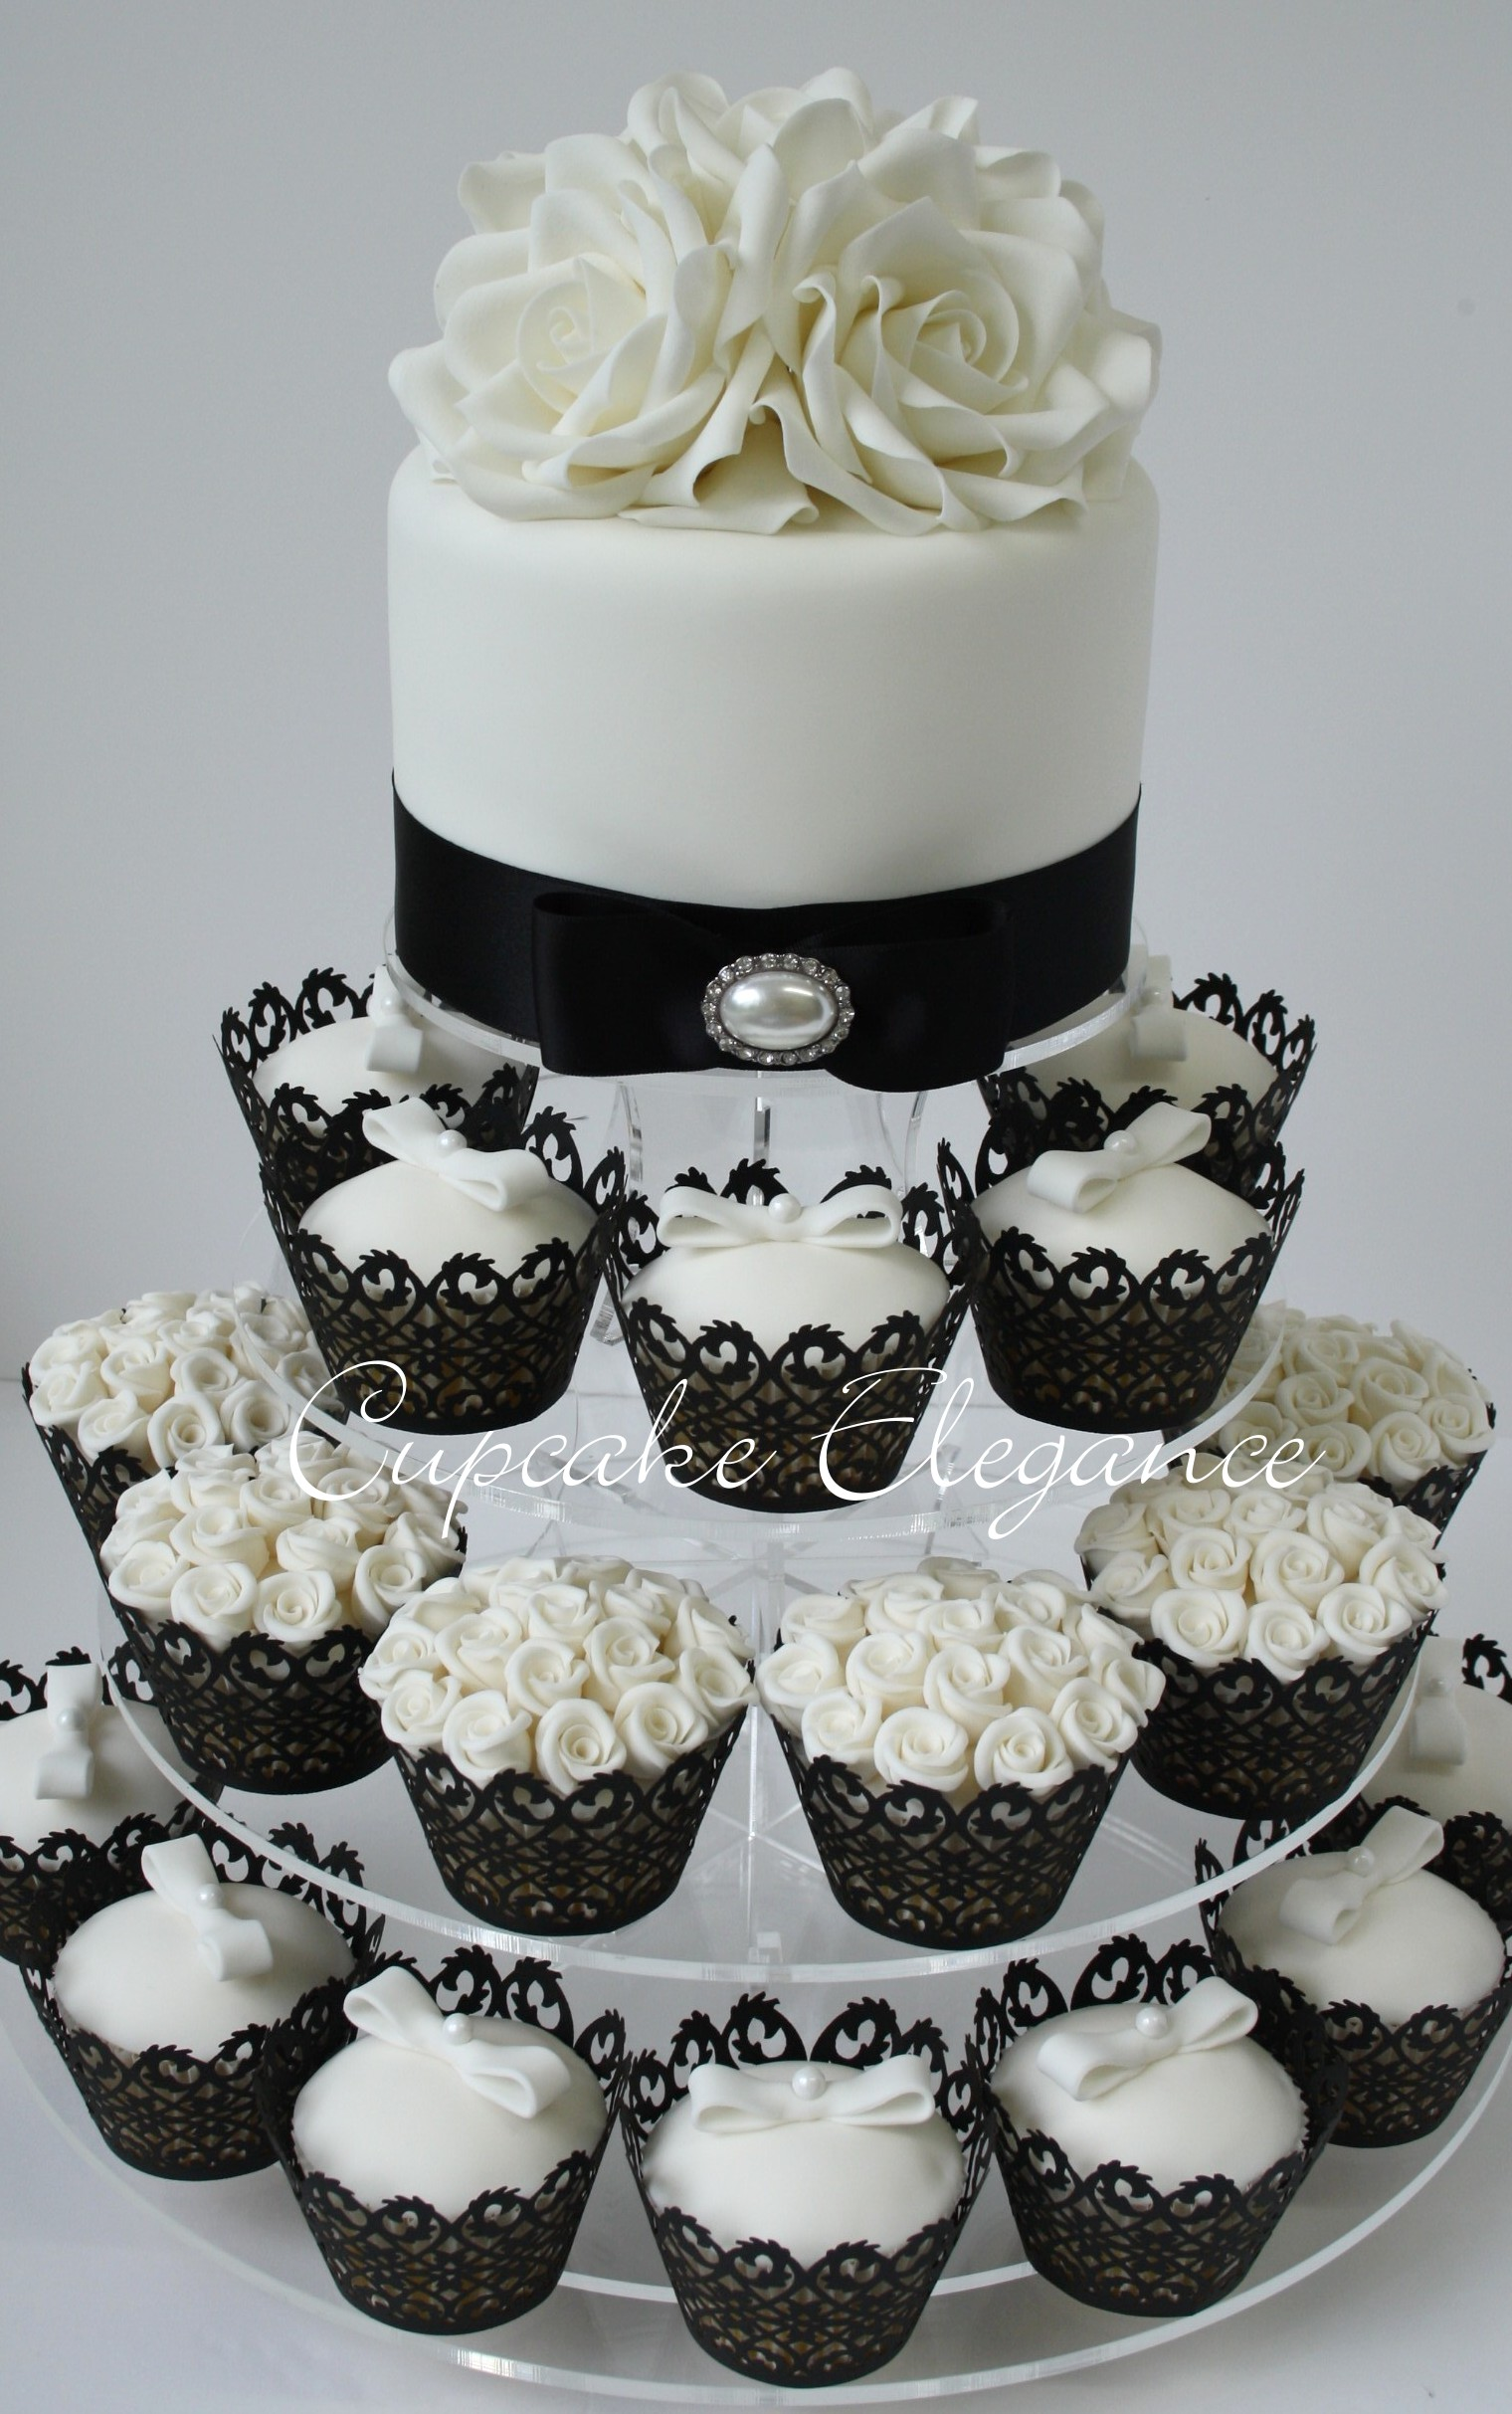 12 Black And White Wedding Cupcakes With Liners Photo Black And